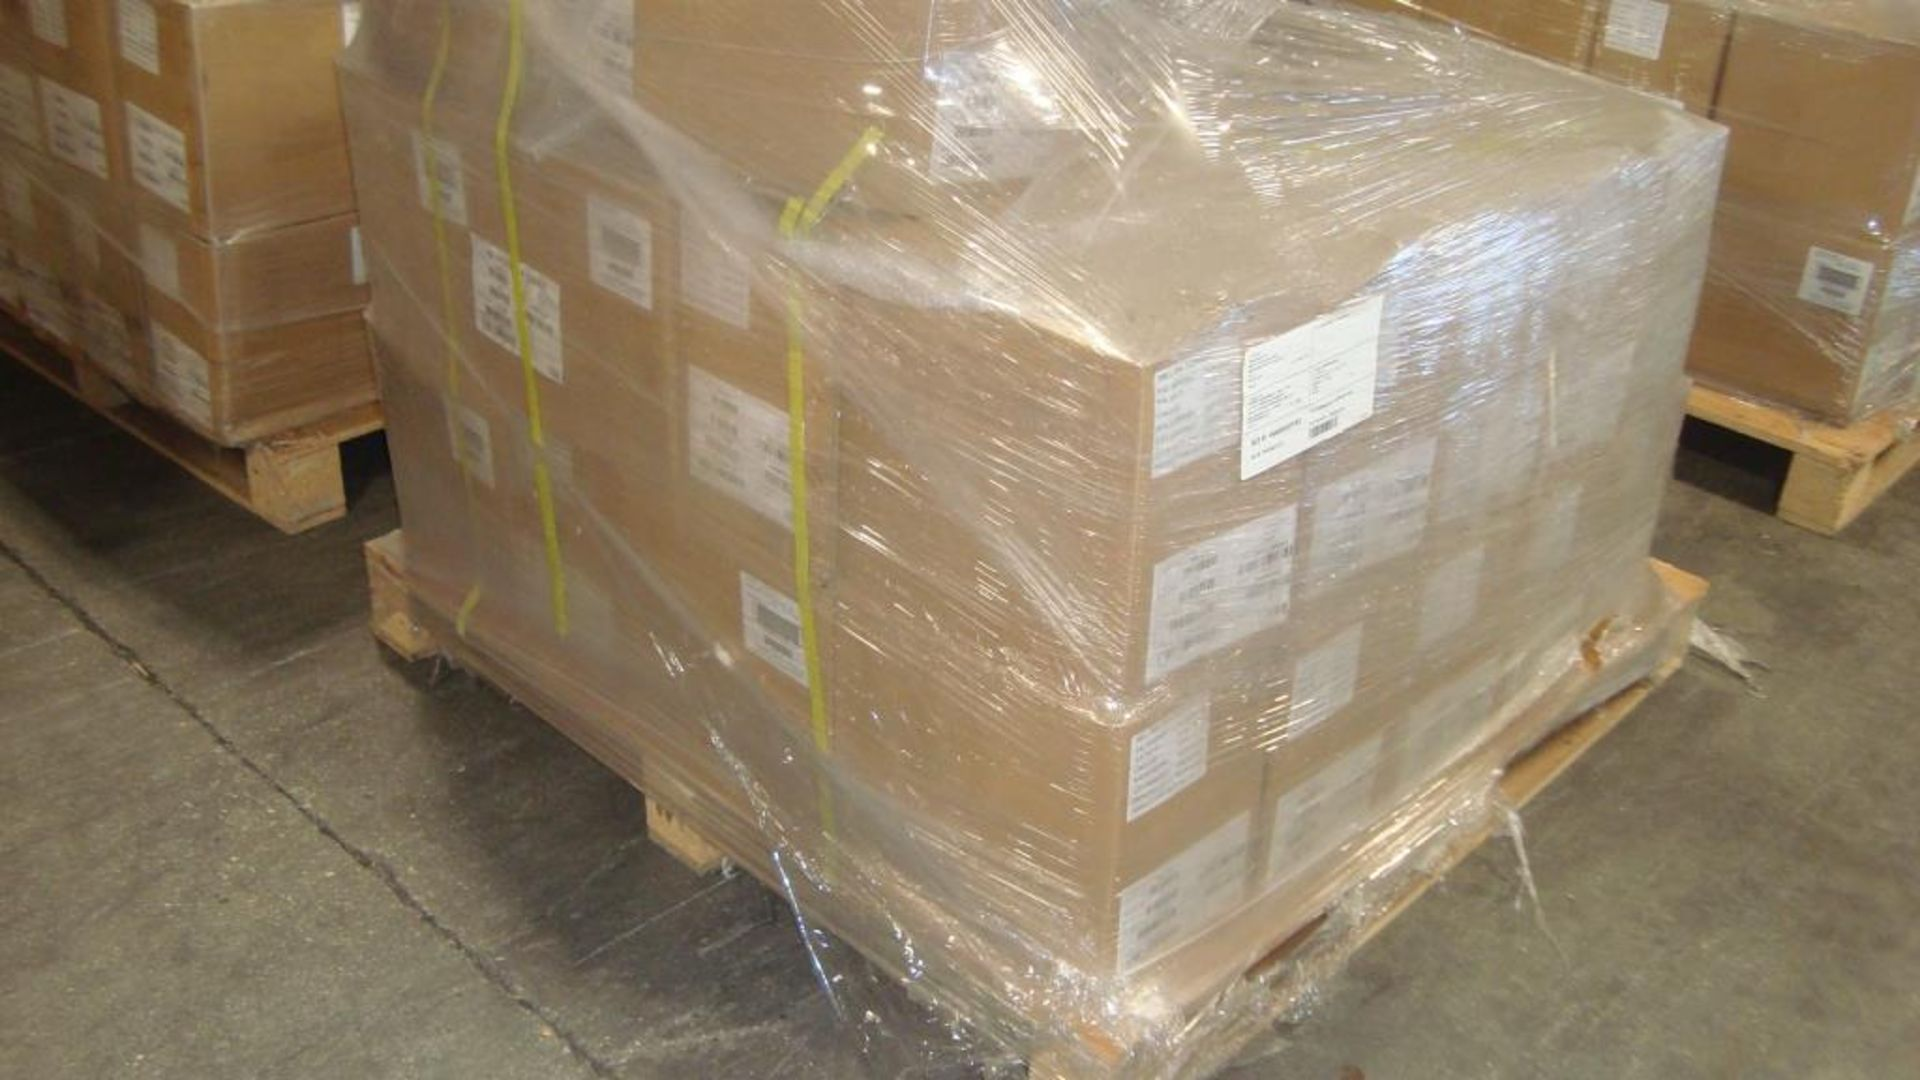 Extension Cords. Lot: 90 Total (45 Boxes - 2 ea.) Generac pn# 0061121-1 20ft, 30A Power Distribution - Image 7 of 8